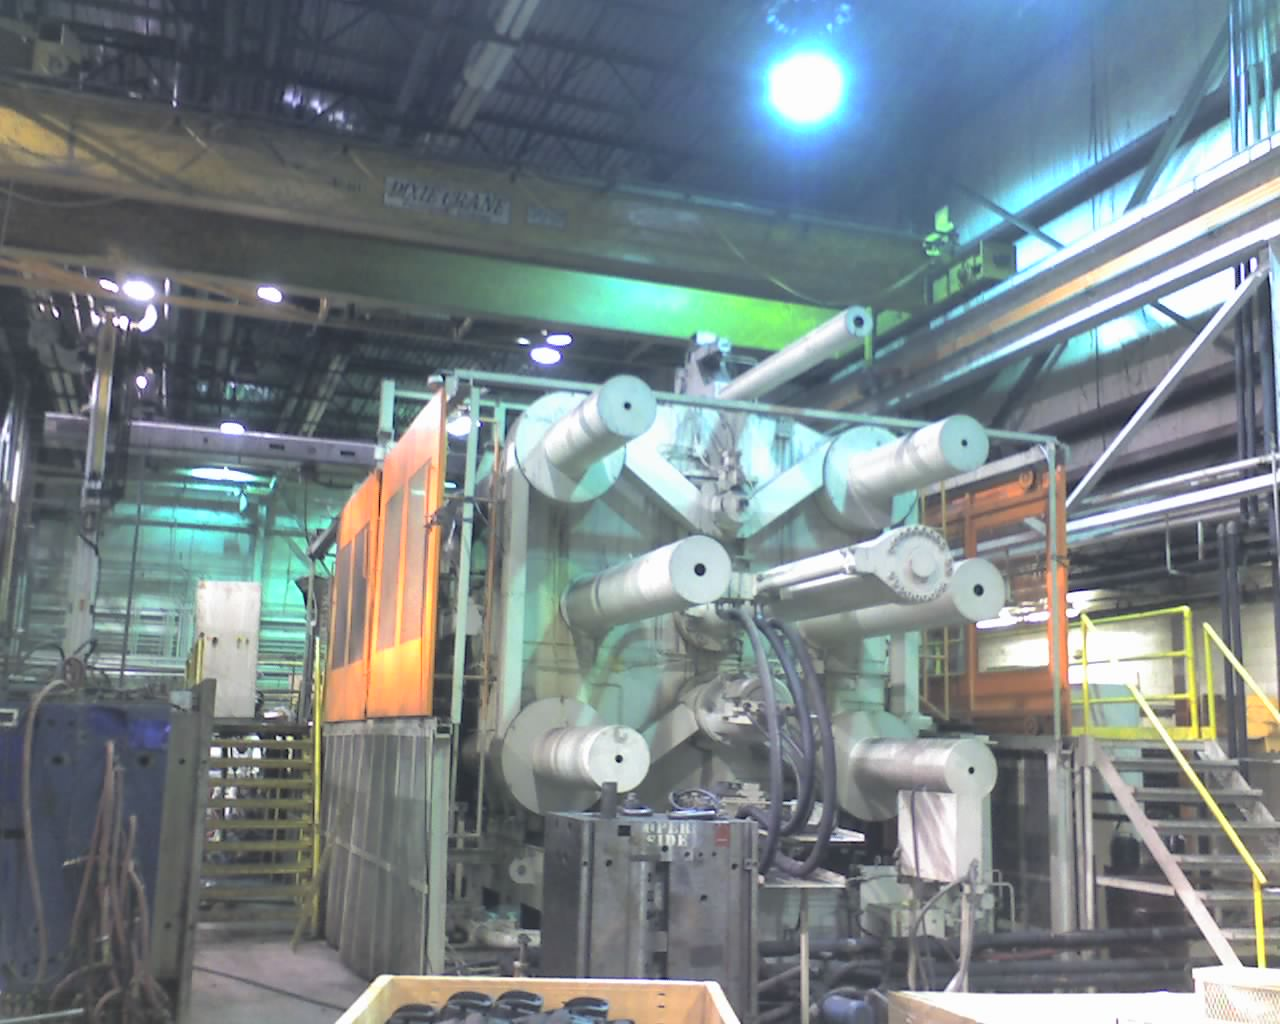 3000 Ton Ube, Plastic Molding Machine 212 Tons (Approx. Weight)